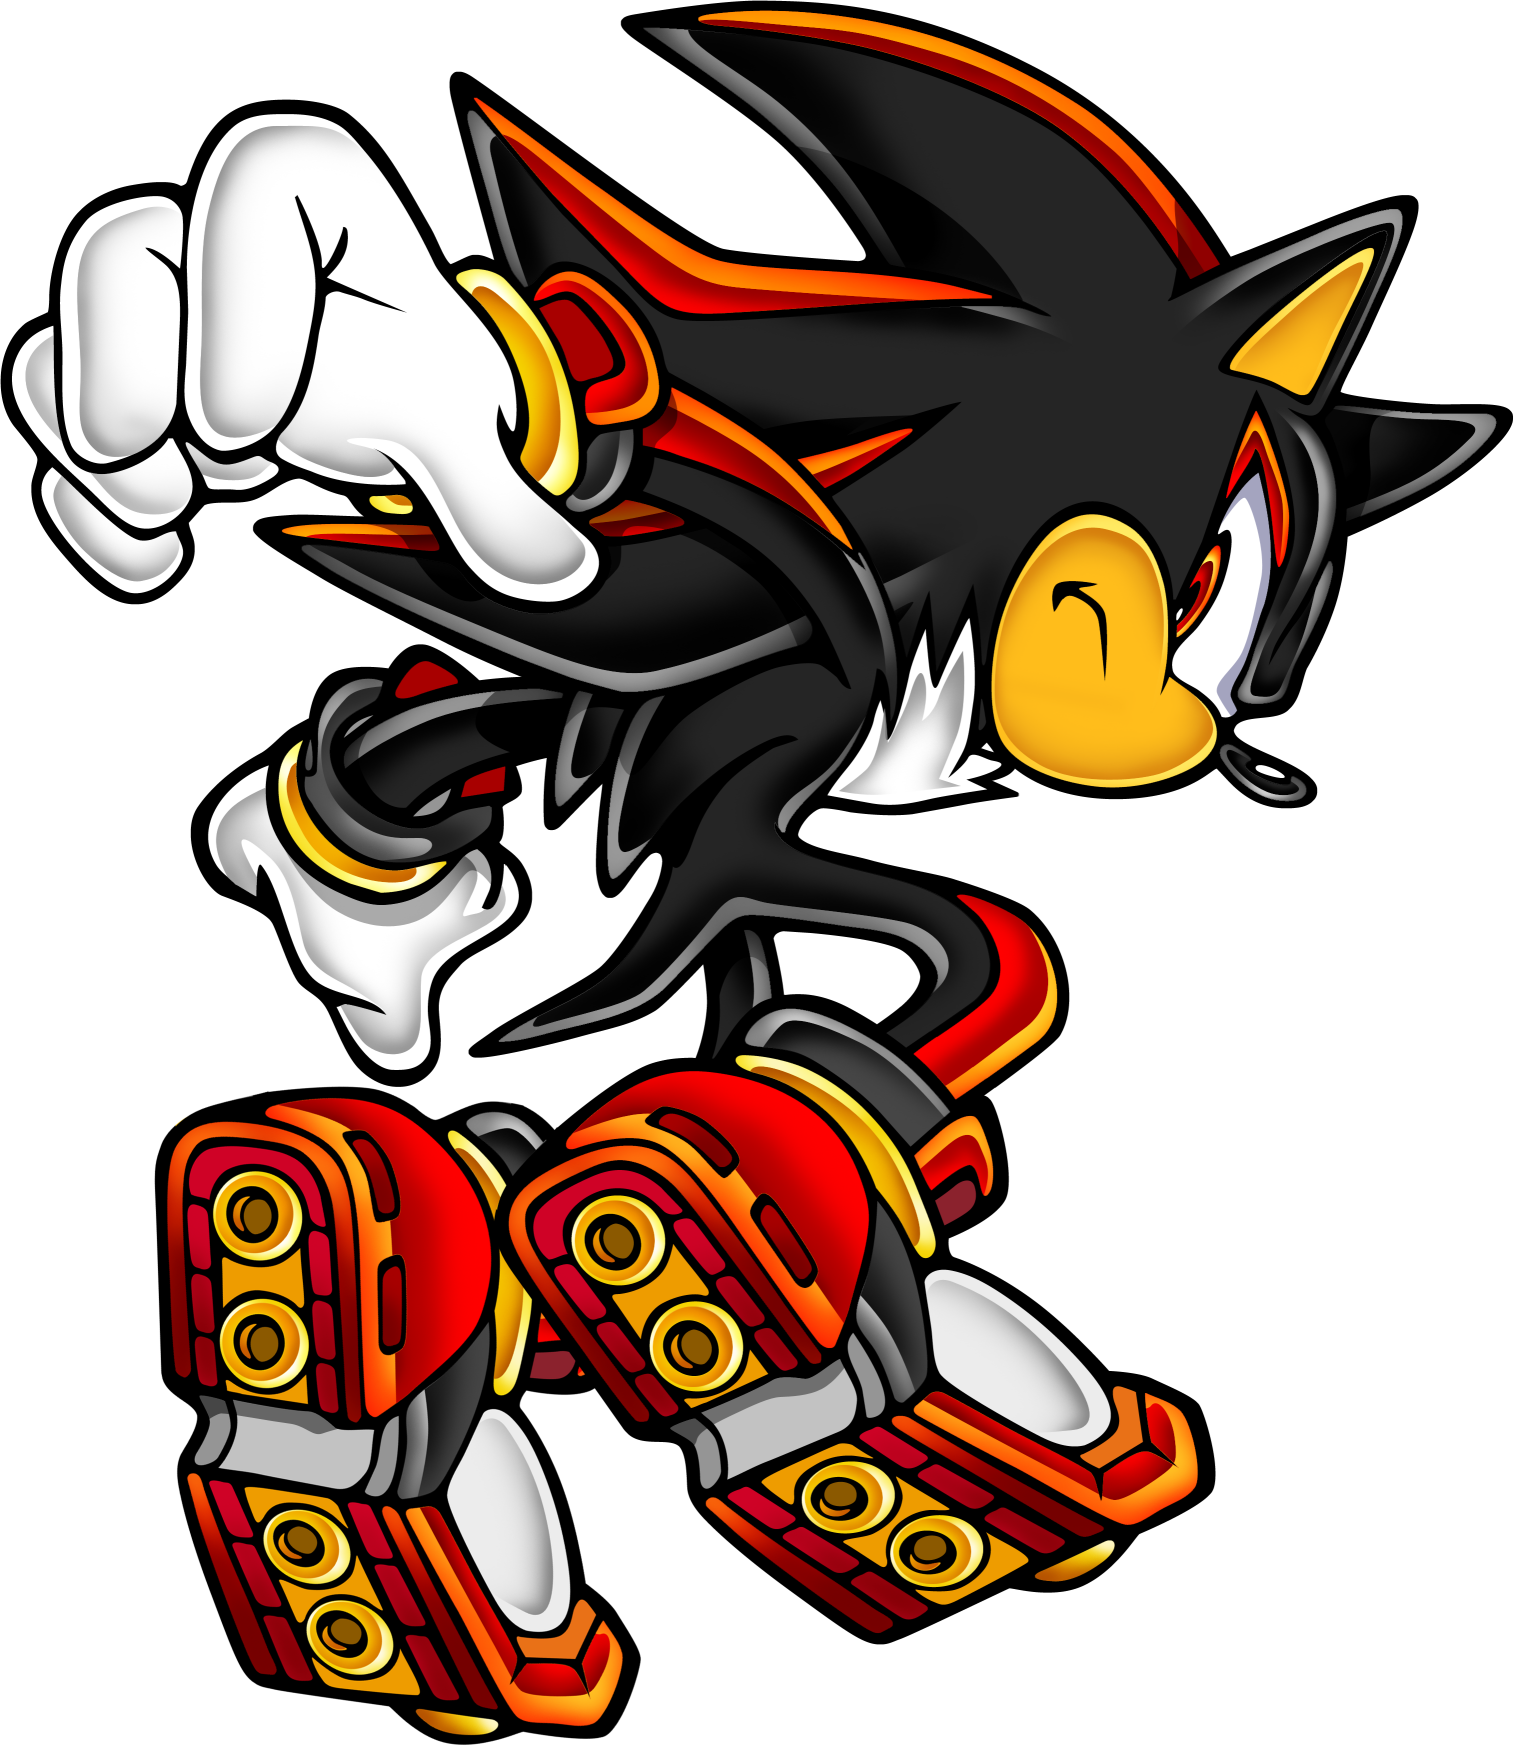 Sonic adventure 2 png. Image shadow news network